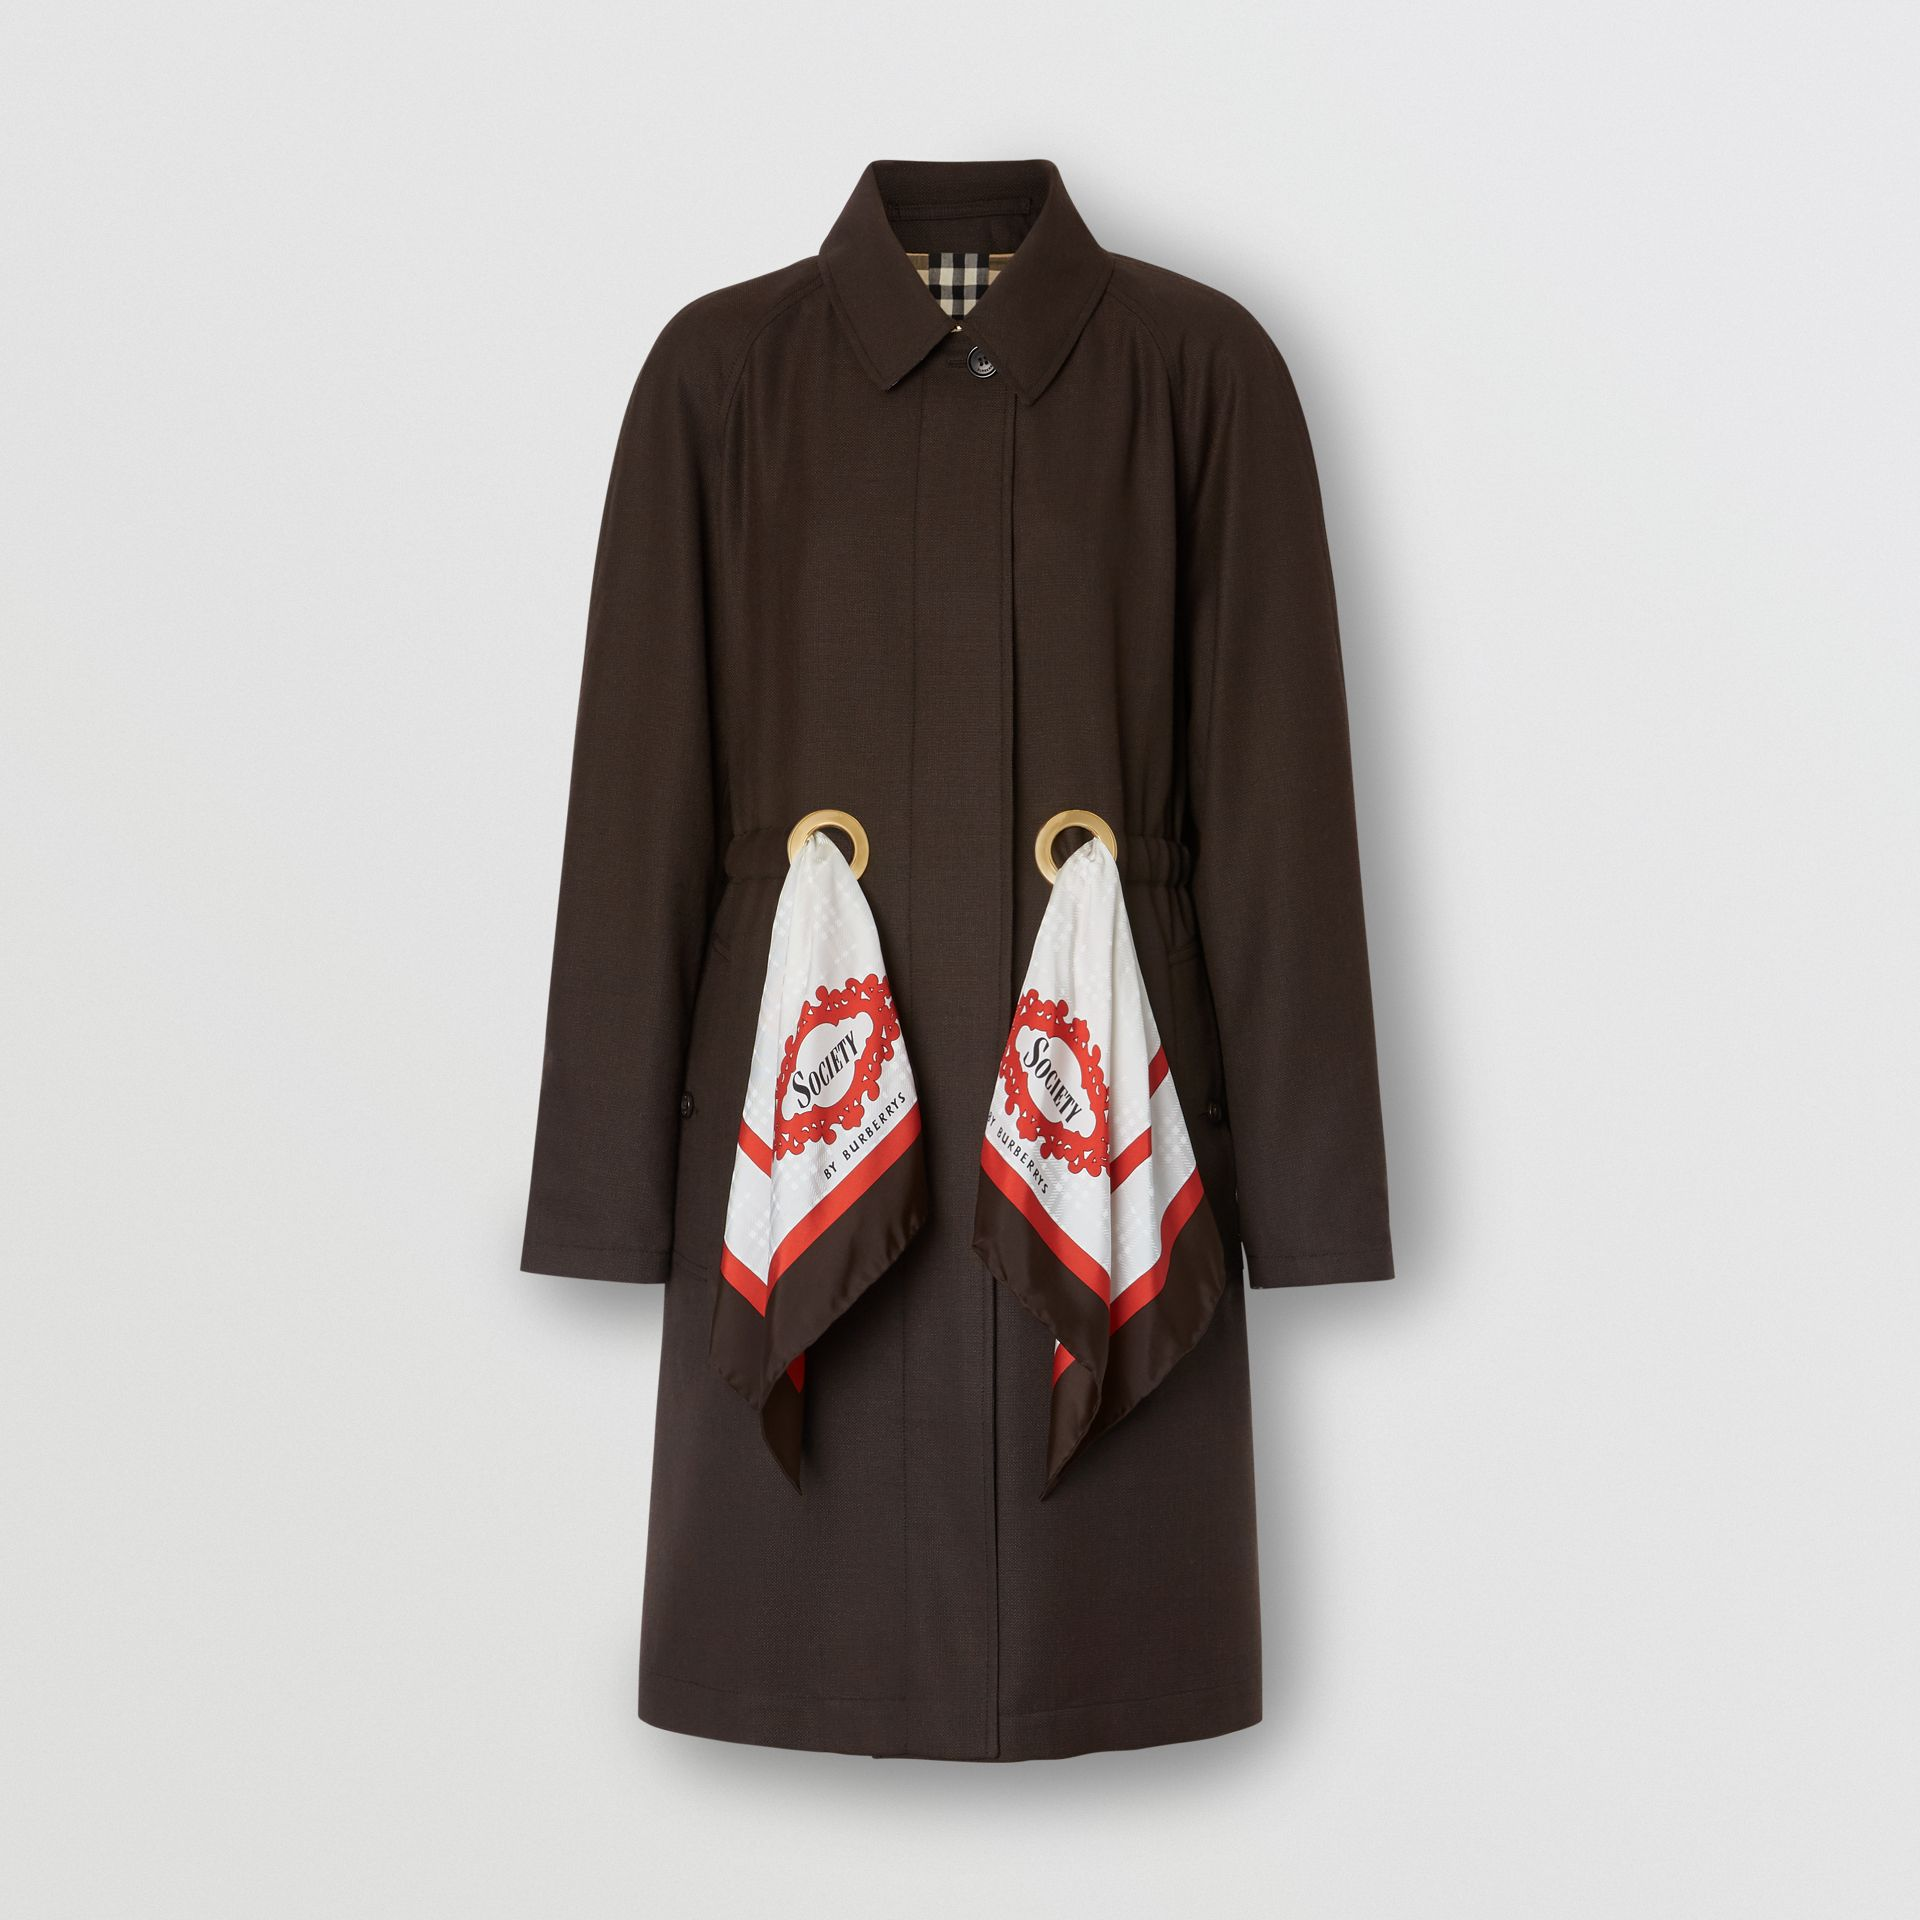 Scarf Detail Wool Car Coat in Coffee - Women | Burberry Hong Kong - gallery image 3